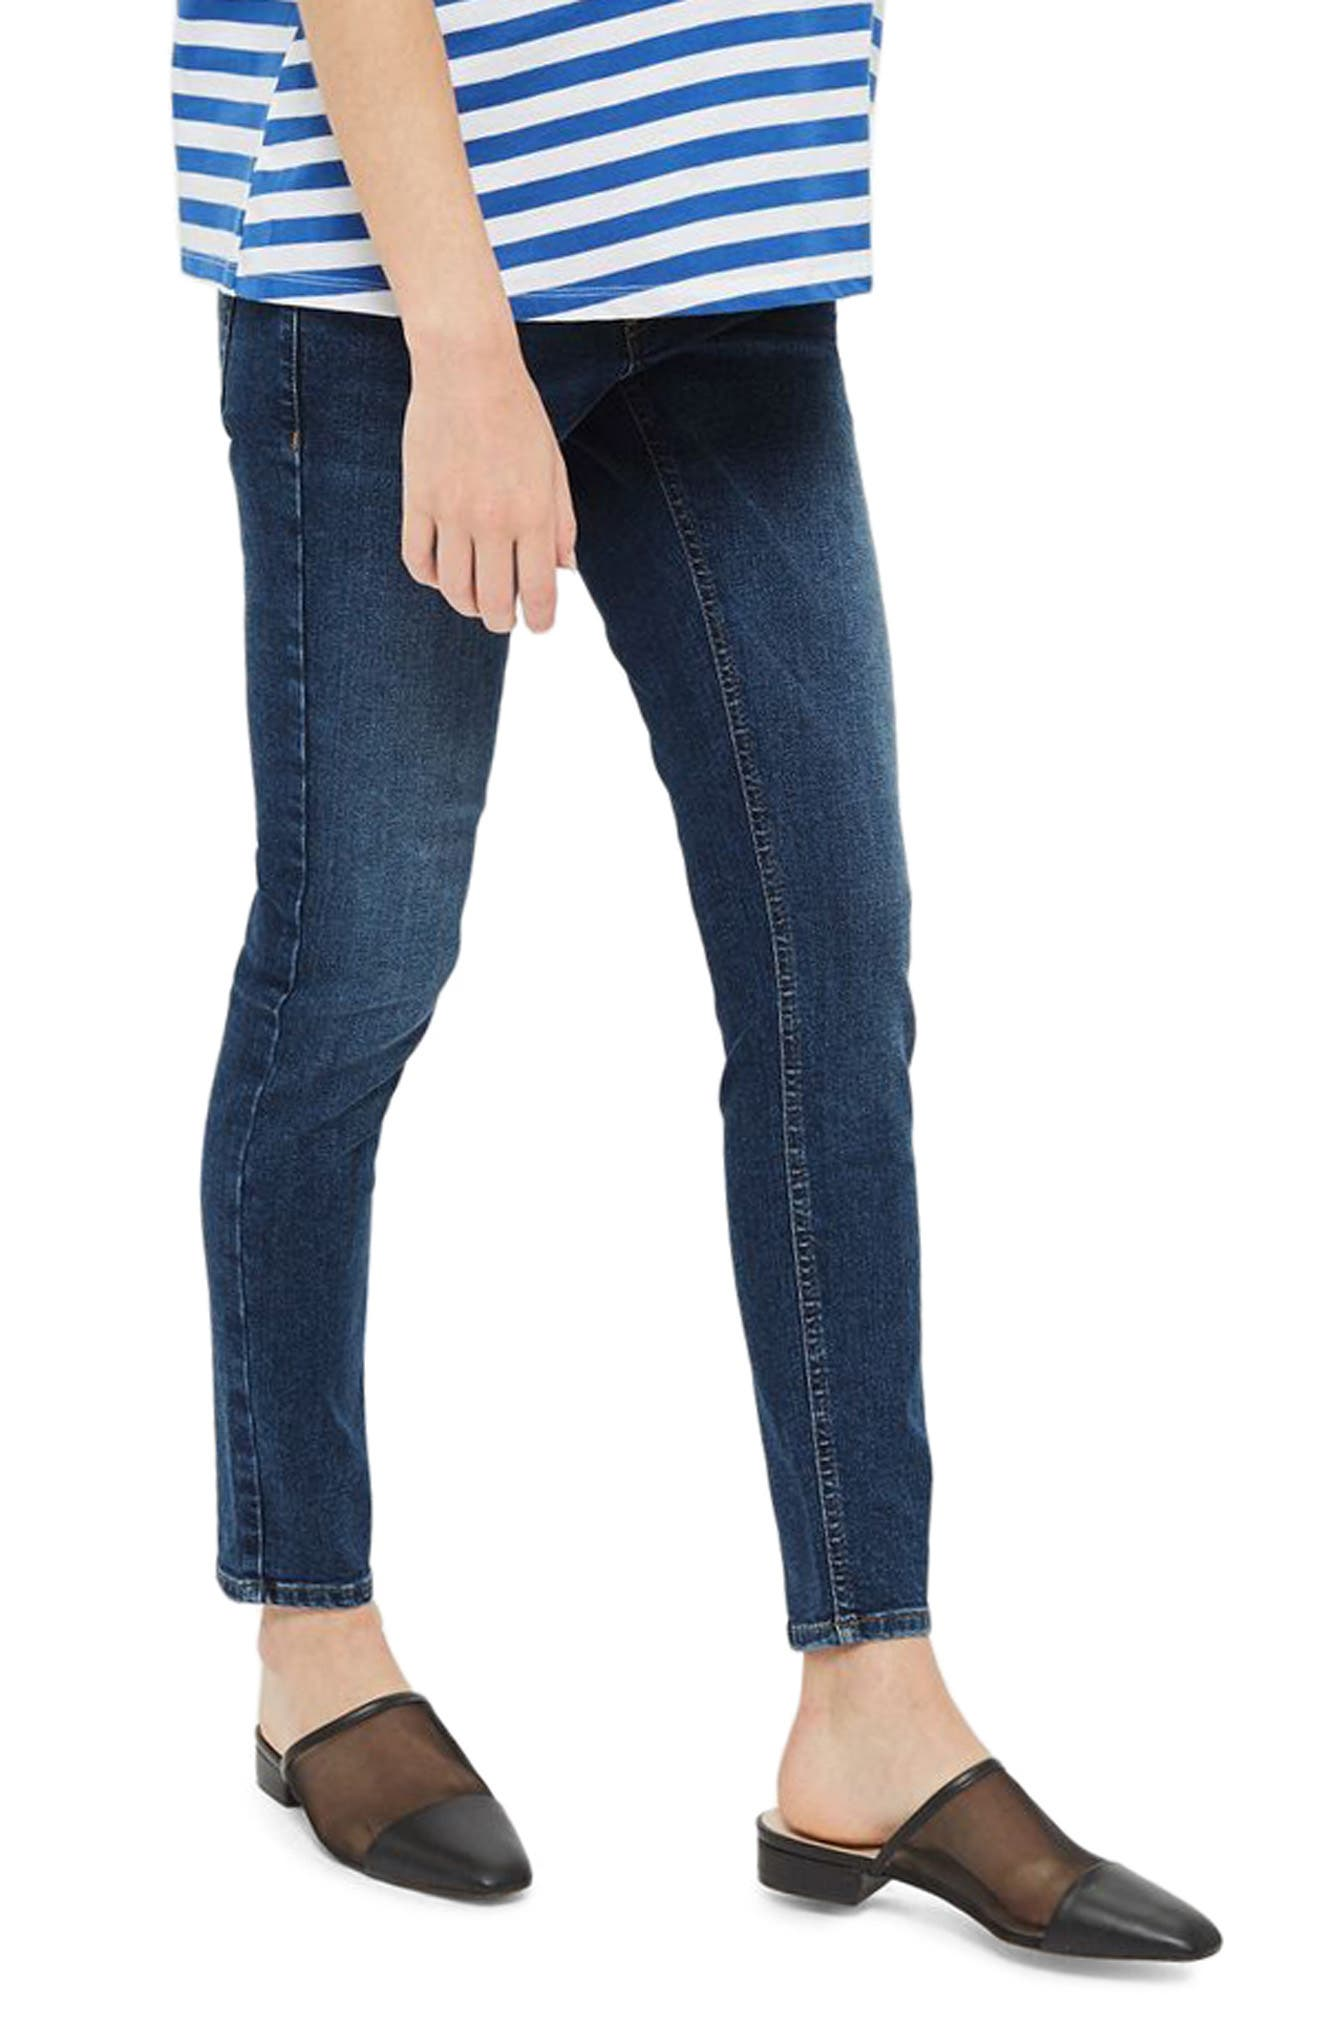 Jamie Over the Bump Maternity Skinny Jeans,                             Main thumbnail 1, color,                             Mid Denim